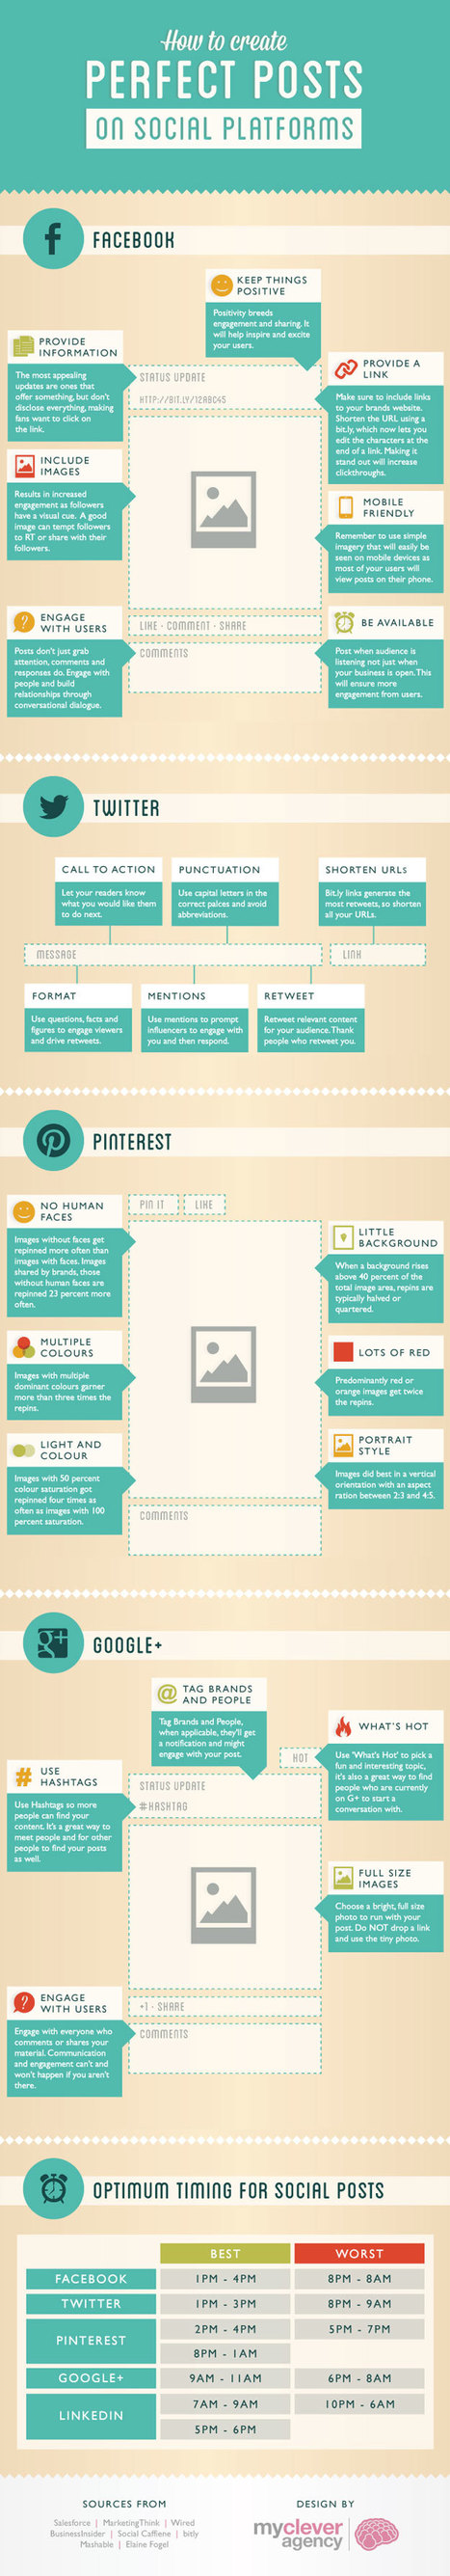 How To Create Effective Posts on the 4 Main Social Sites [Infographic] | Wepyirang | Scoop.it